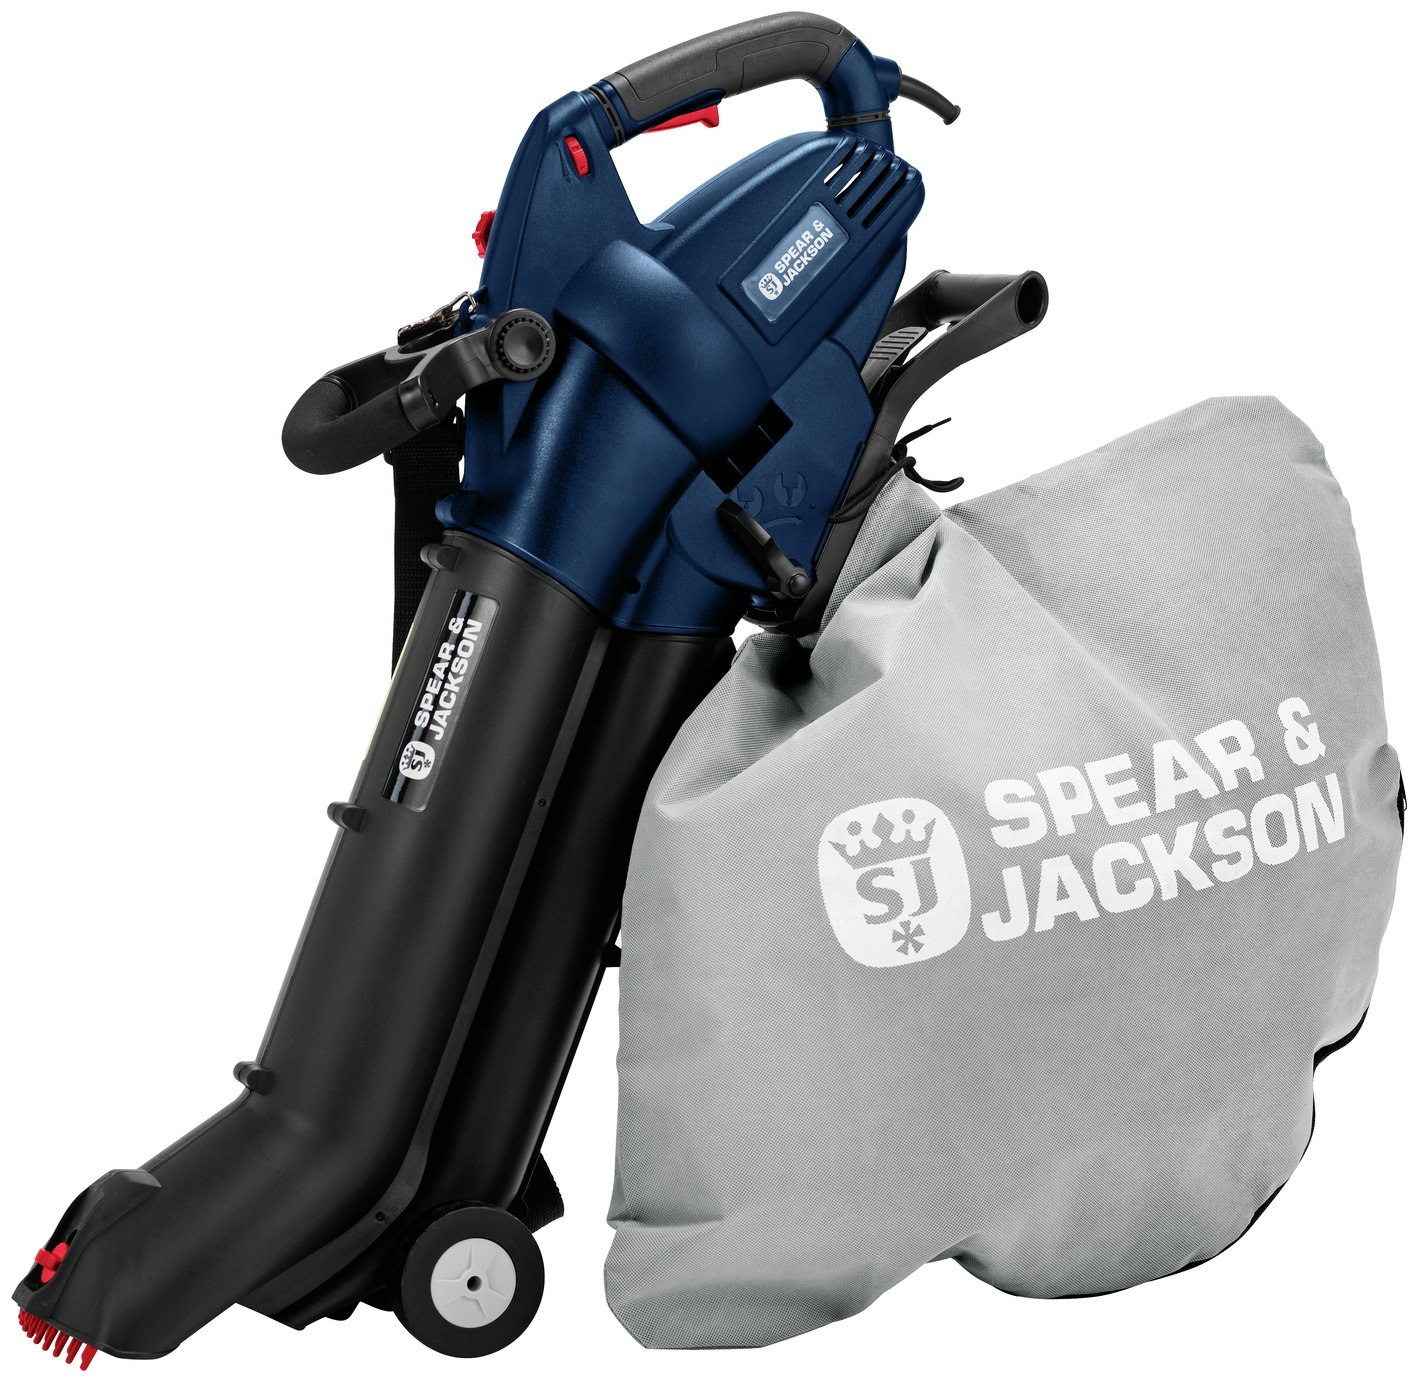 Spear & Jackson S30BLV Corded Leaf Blower and Vac - 3000W